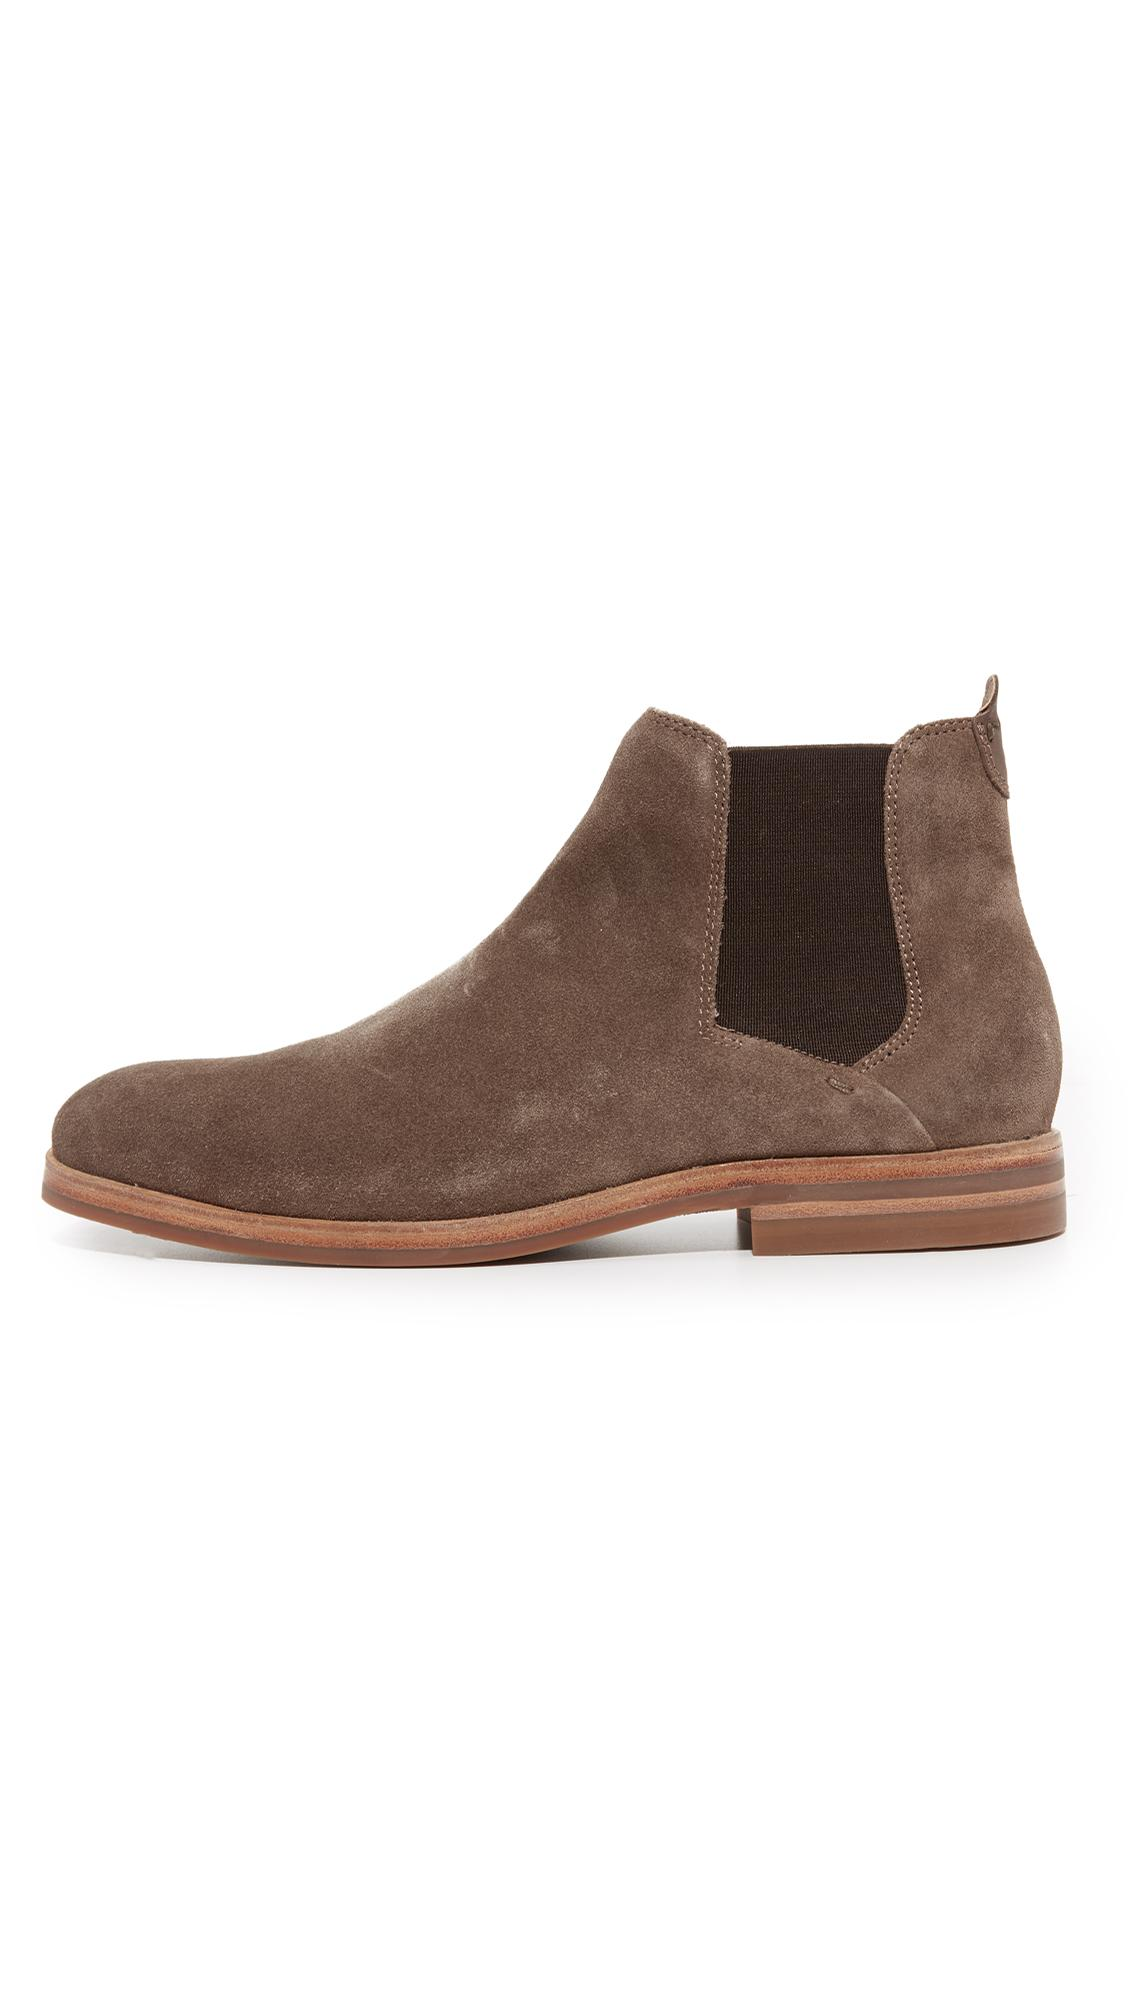 476ea8cf46b H by Hudson Tonti Suede Chelsea Boots in Brown for Men - Lyst